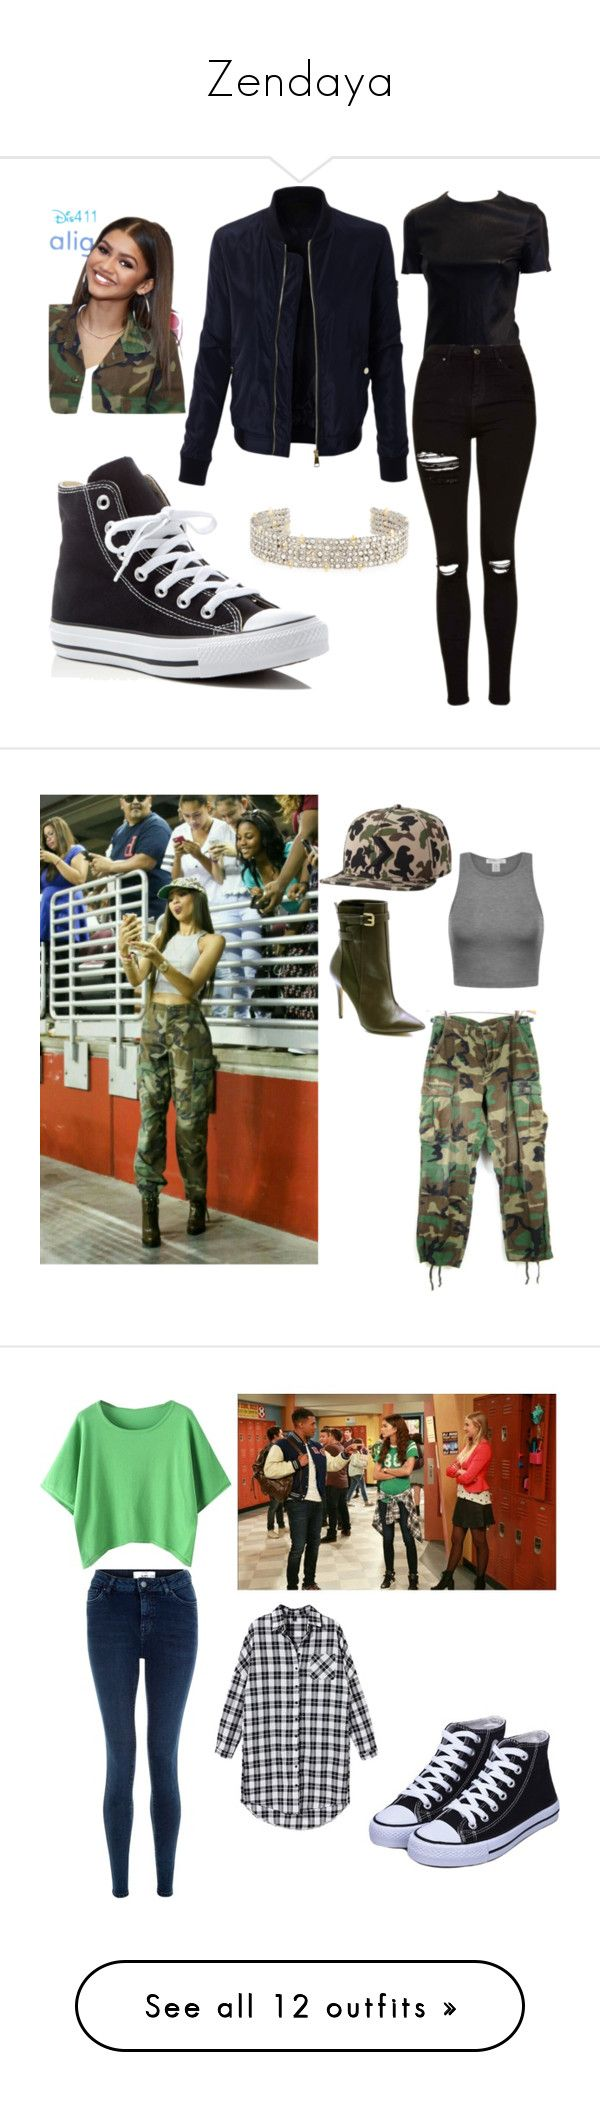 """Zendaya"" by simina650 ❤ liked on Polyvore featuring LE3NO, Topshop, Converse, Alexis Bittar, Charles by Charles David, New Look, H&M, Coleman, Yves Saint Laurent and River Island"